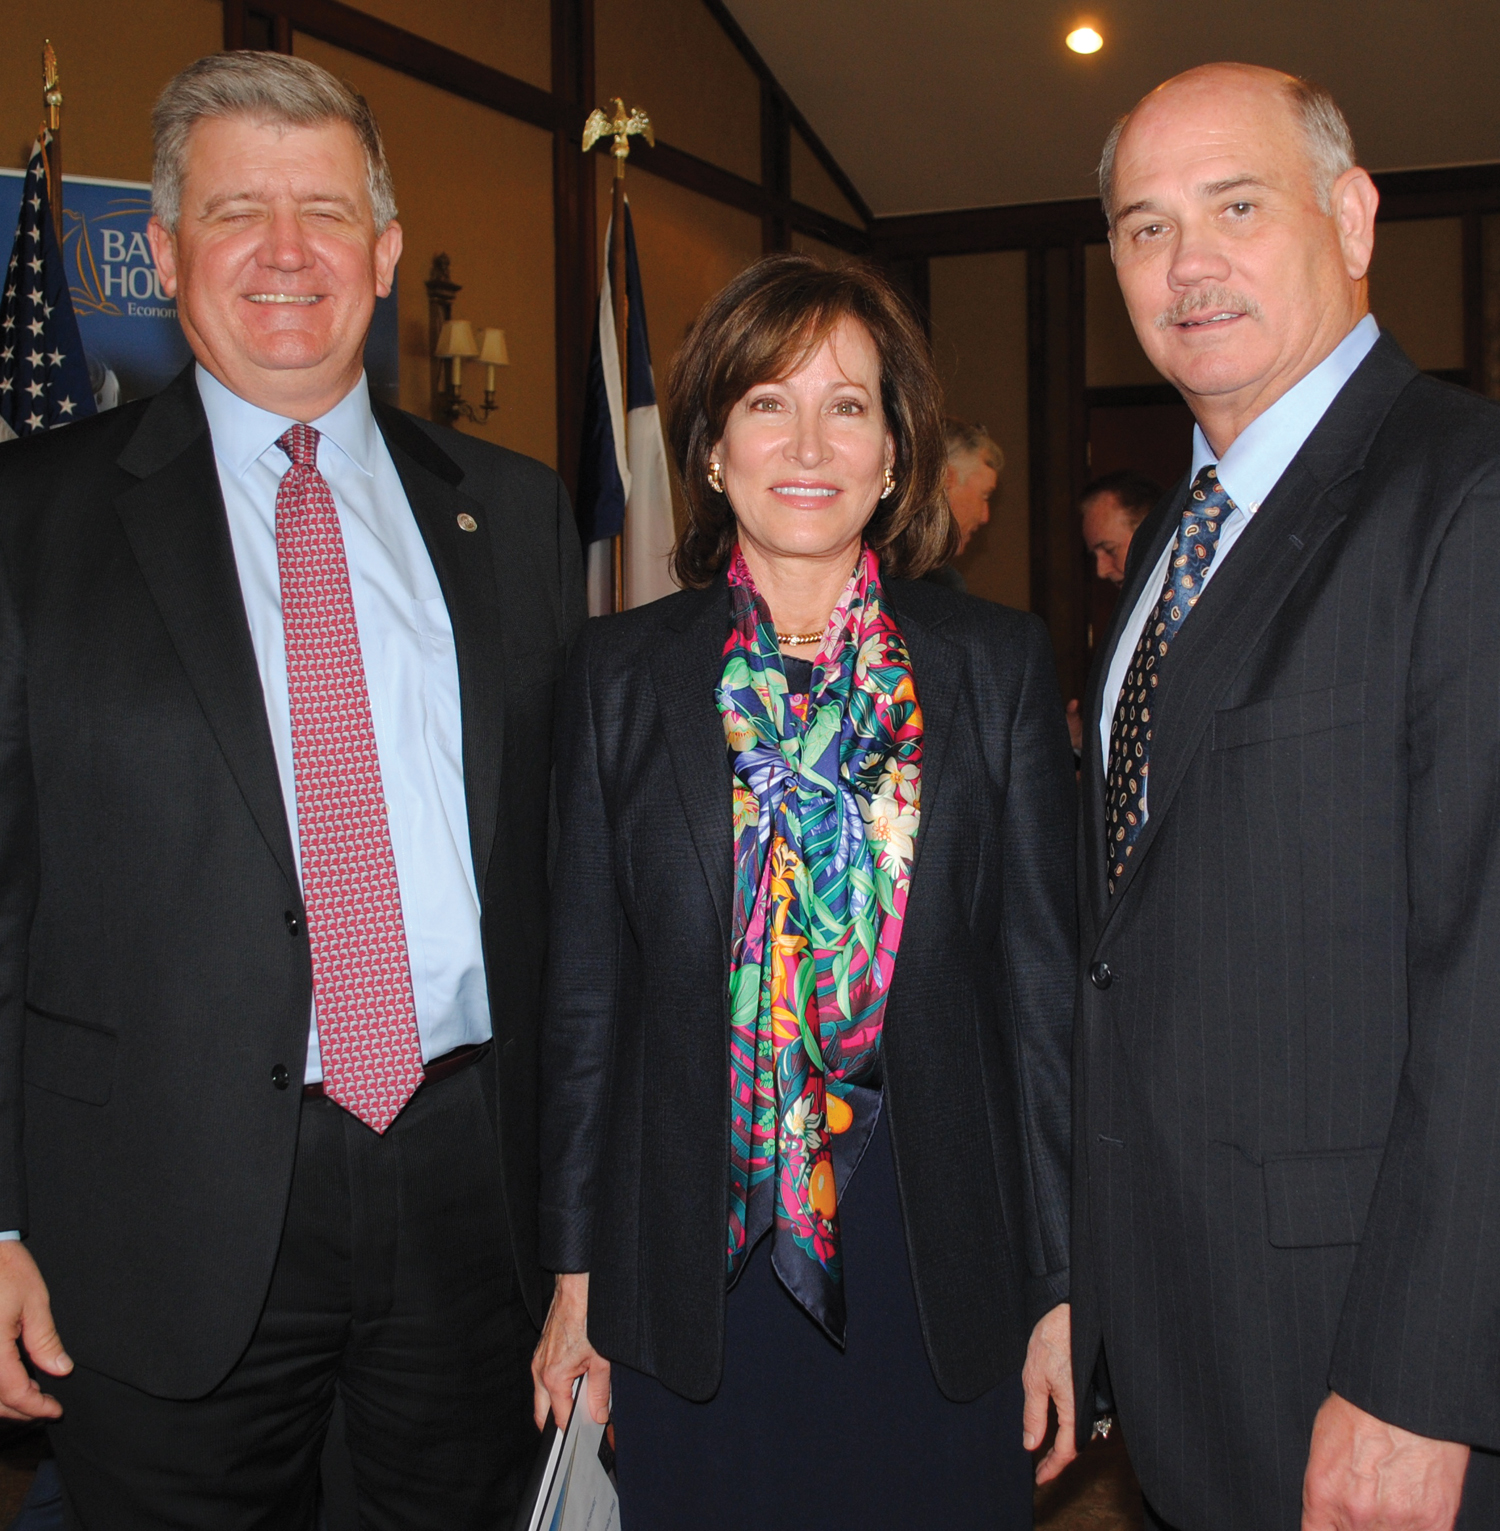 Bay Area Houston Economic Partnership President Bob Mitchell, right, visits with Port of Houston Executive Director Roger Guenther and Port Commission Chairman Janiece Longoria during BAHEP's State of the Port meeting at Lakewood Yacht Club.